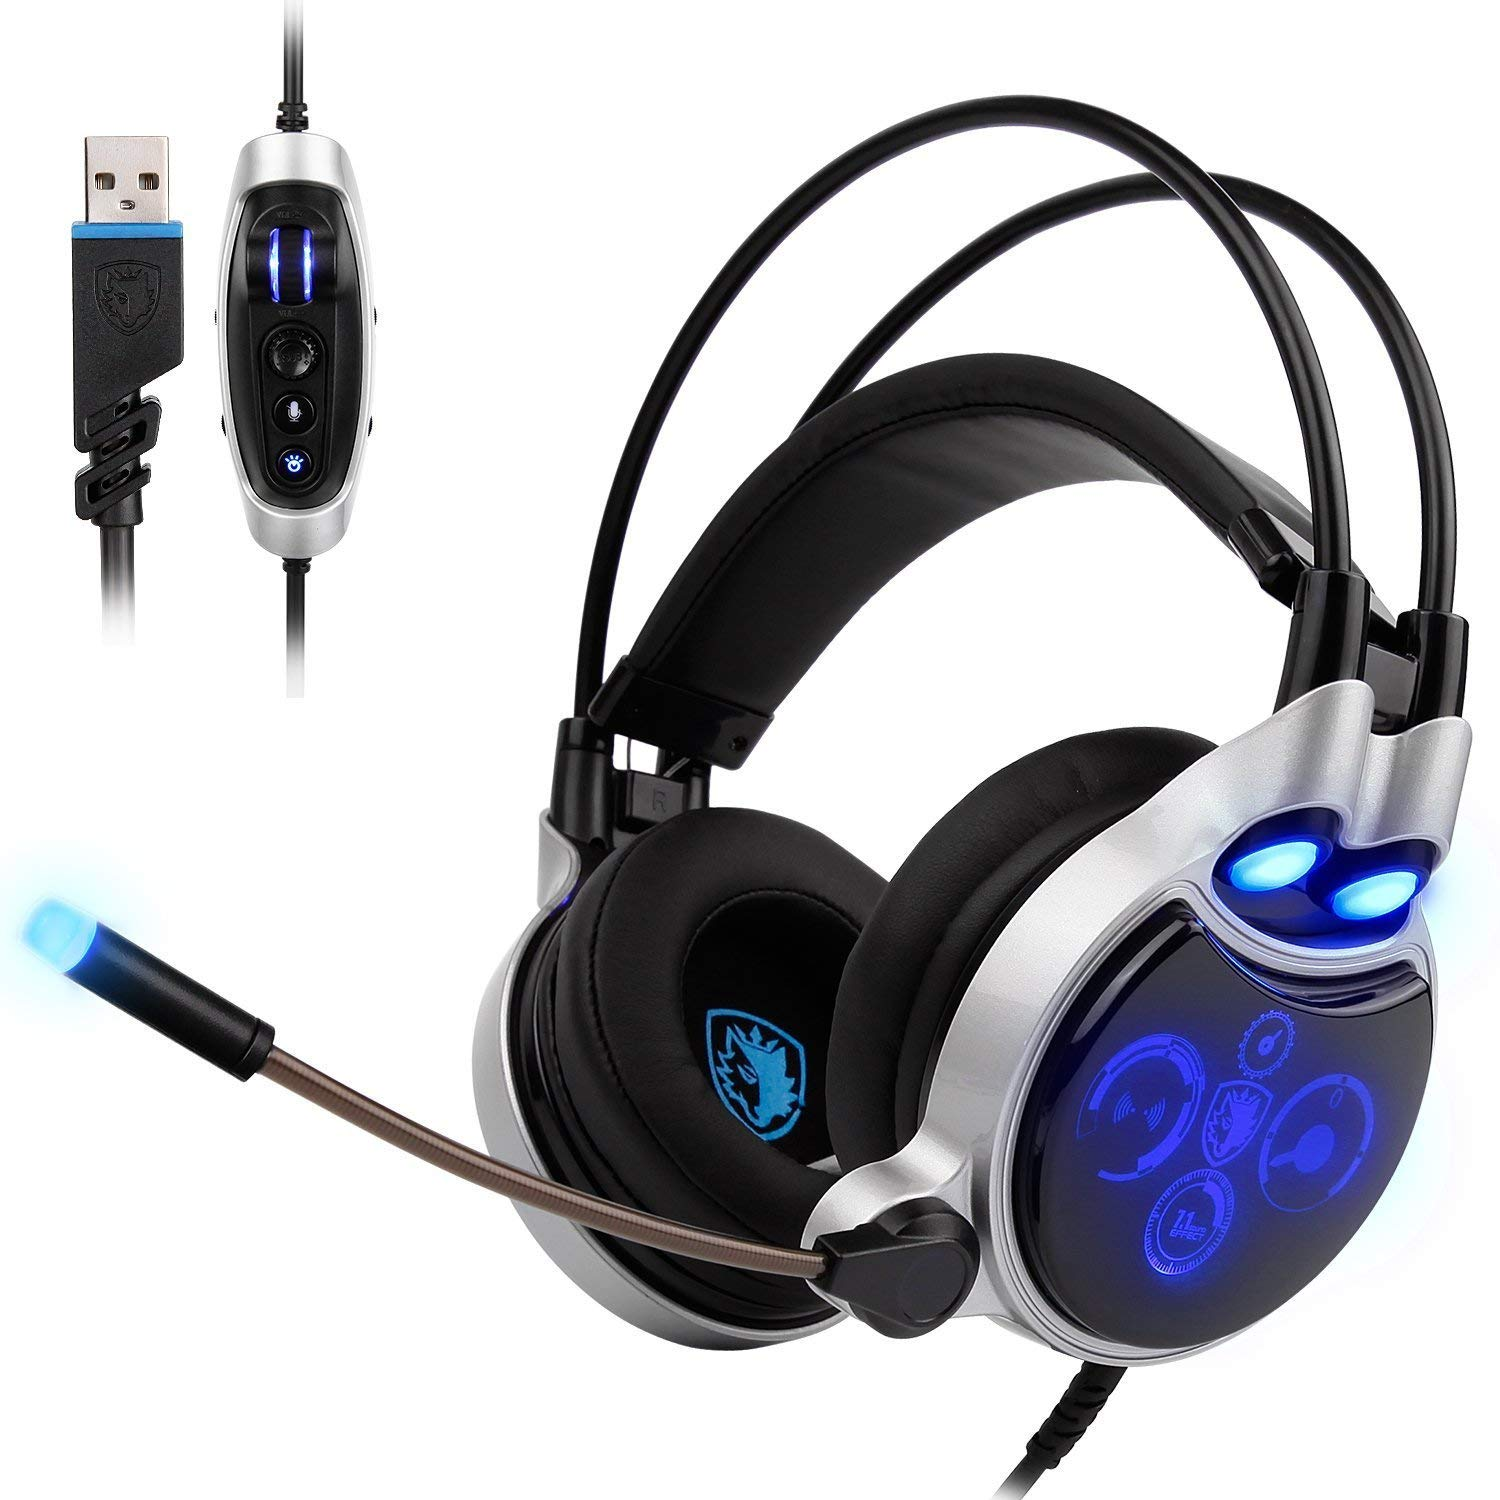 USB Wired Headphones 7.1 Surround Sound PC Gaming Headset,Mic Flexible,Over-Ear Volume Control LED Lighting Noise Cancelling original xiberia v5 gaming headphone super bass stereo usb wired headset microphone over ear noise lsolating pc gamer headphones